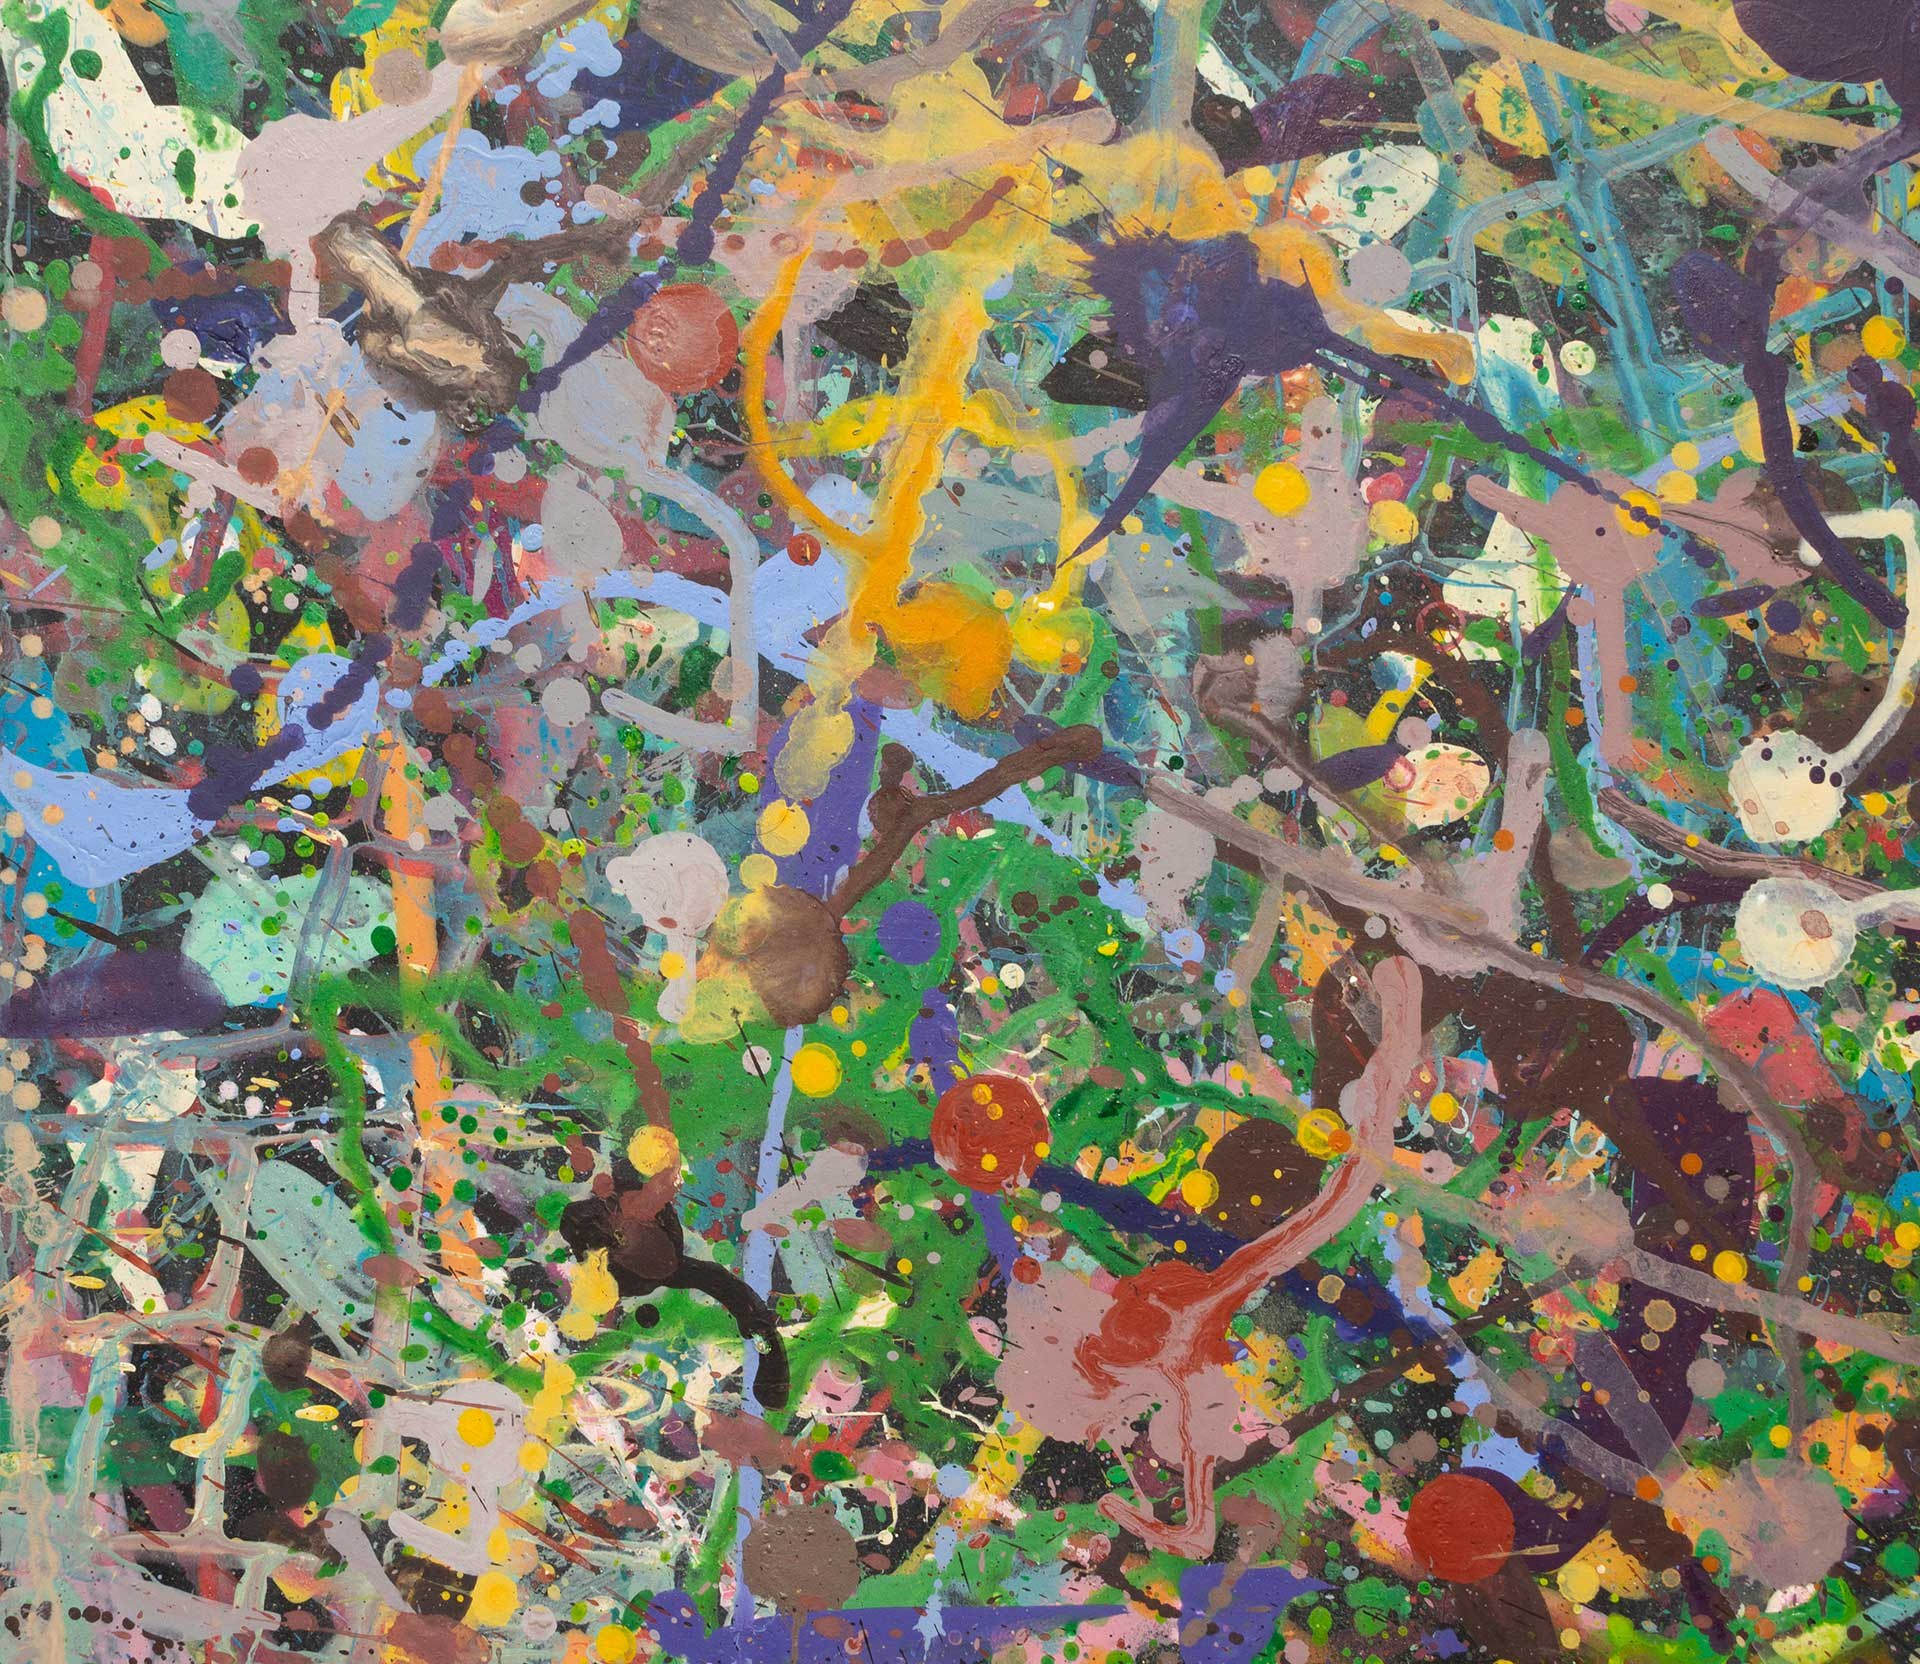 Abstract expressionism painting - Field of flowers - Yarra Glen #1 - Detail 3